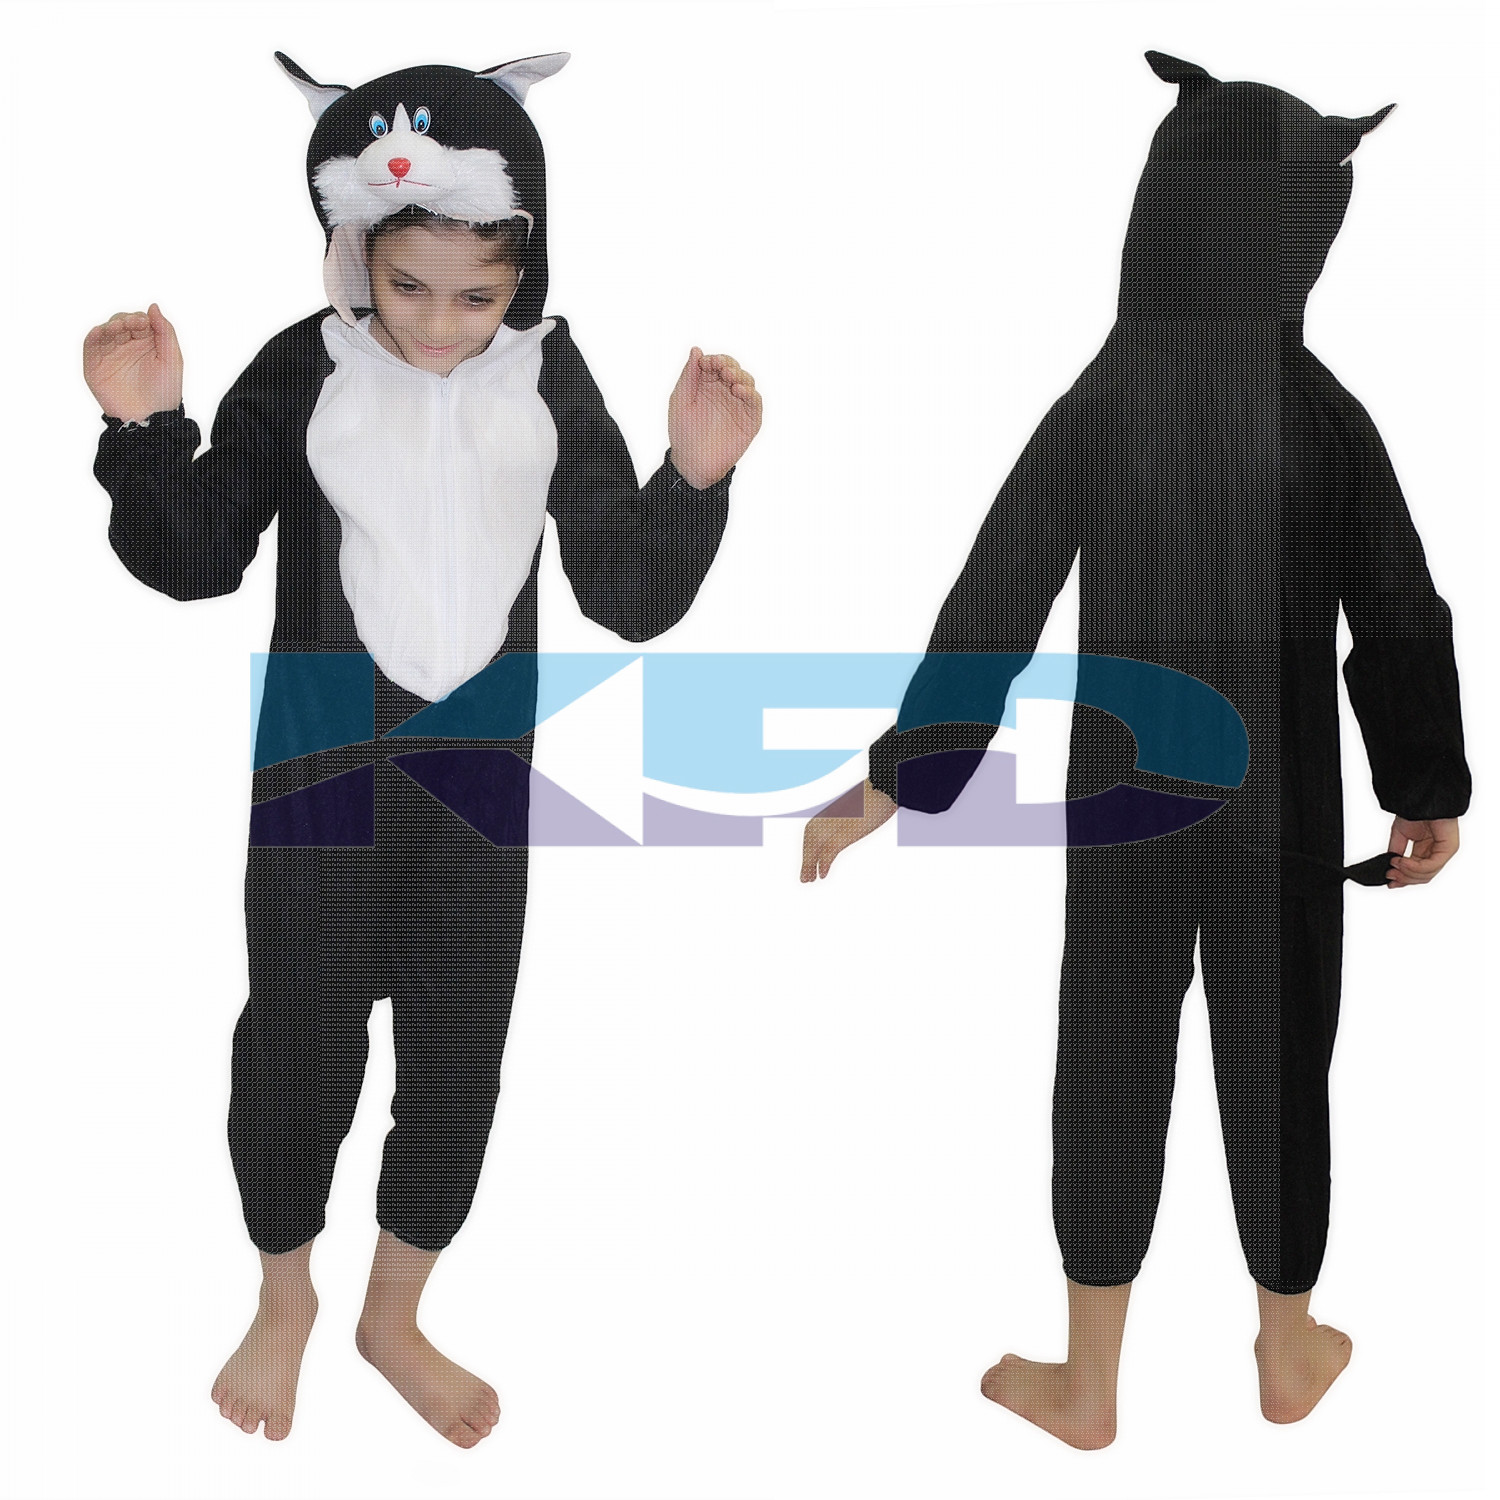 Cat fancy dress for kids,Pet Animal Costume for School Annual function/Theme Party/Competition/Stage Shows Dress